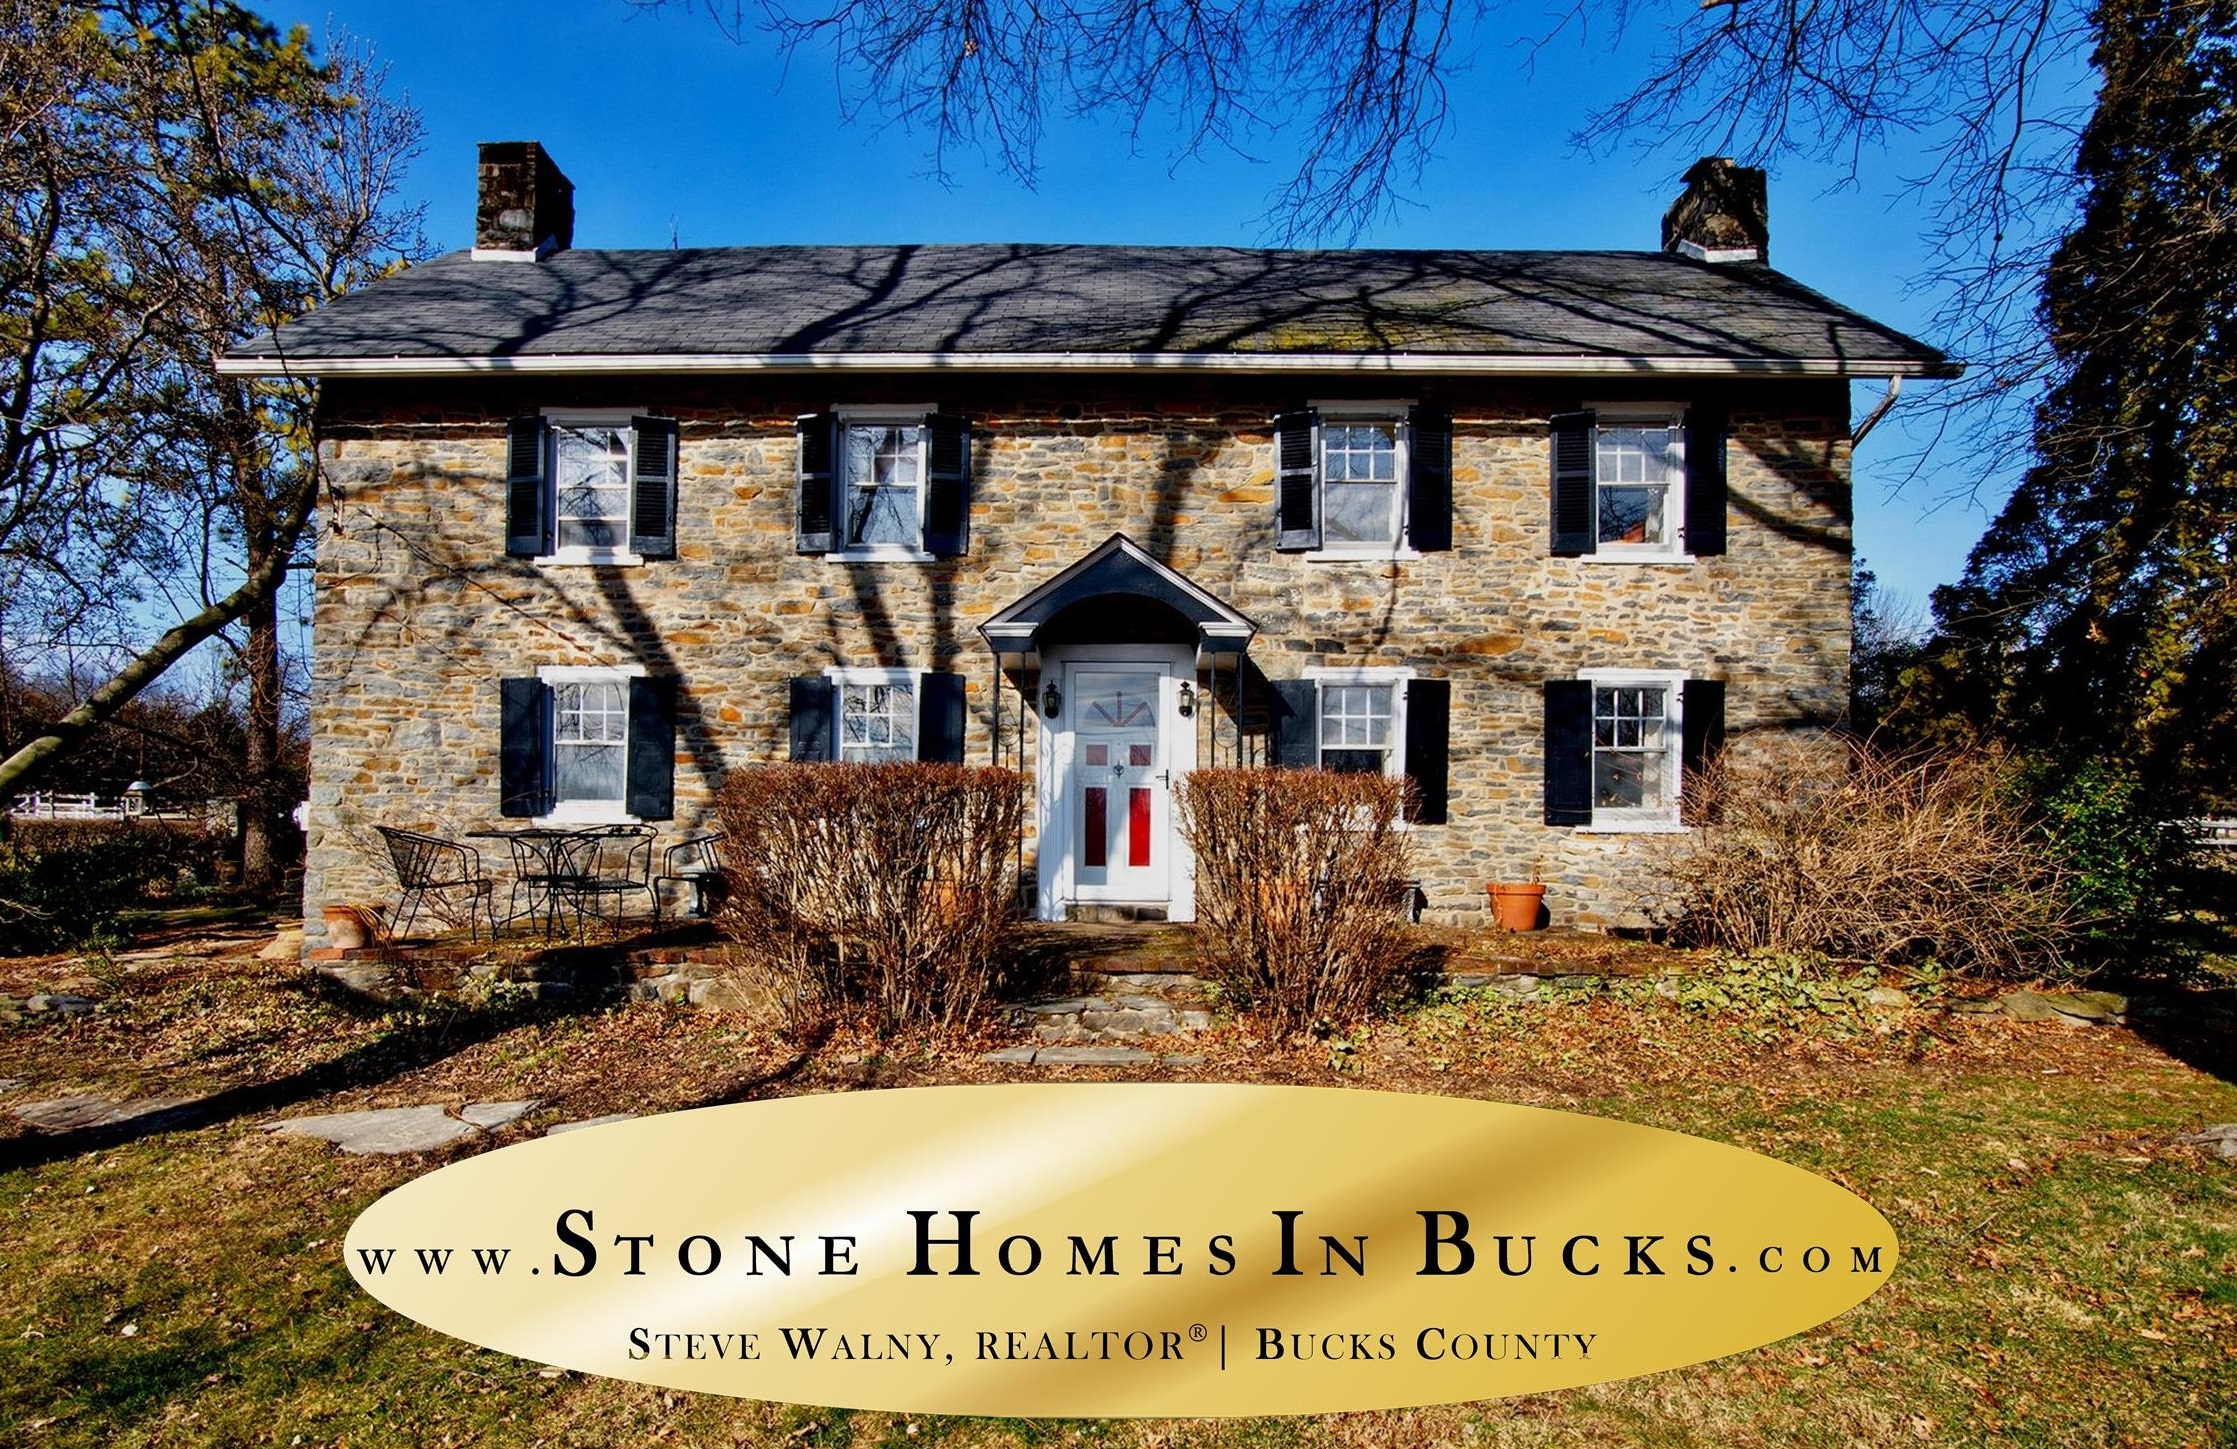 Stone Homes In Bucks | www.StoneHomesInBucks.com | Historic Homes In Bucks | Doylestown Realtors | Doylestown Realtor | New Hope Realtors | New Hope Realtor